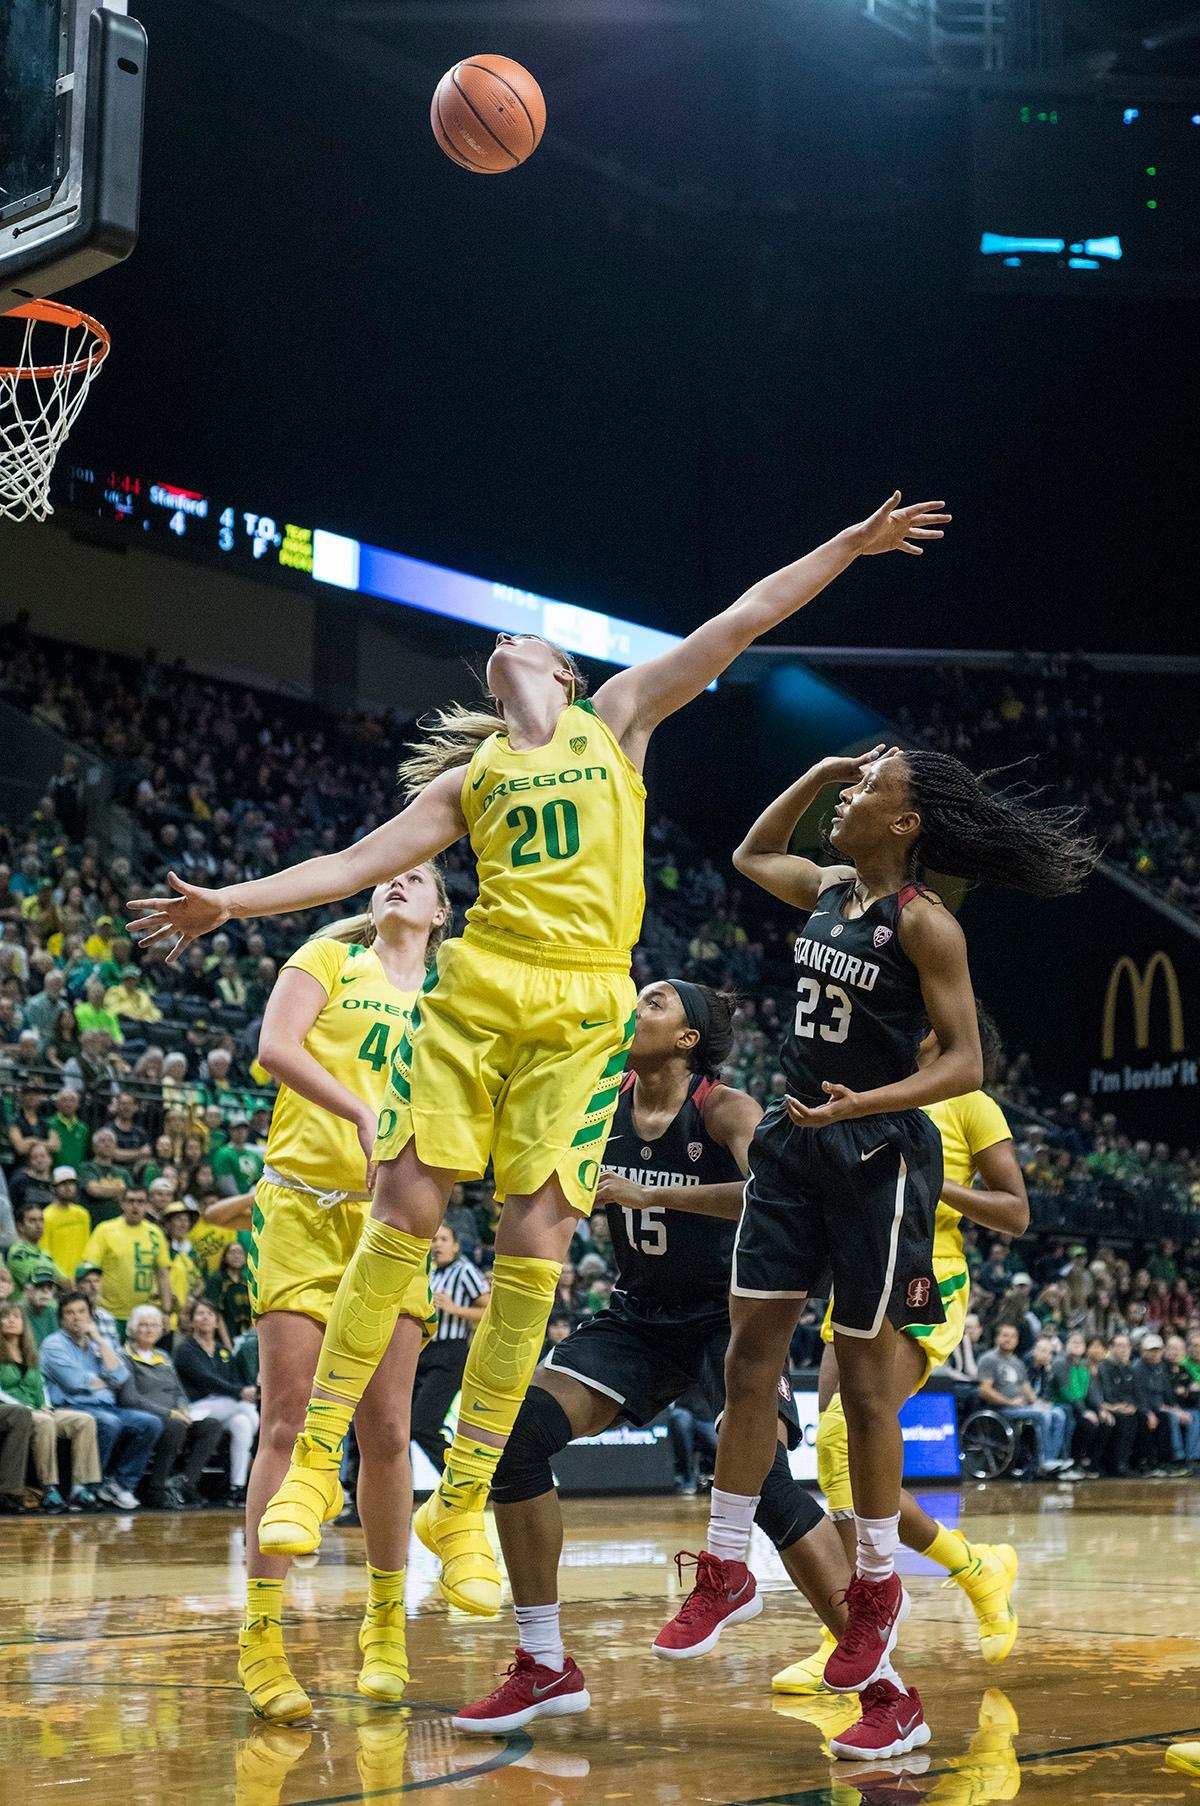 Oregon Ducks Sabrina Ionescu (#20) attempts to block a shot. The Stanford Cardinal defeated the Oregon Ducks 78-65 on Sunday afternoon at Matthew Knight Arena. Stanford is now 10-2 in conference play and with this loss the Ducks drop to 10-2. Leading the Stanford Cardinal was Brittany McPhee with 33 points, Alanna Smith with 14 points, and Kiana Williams with 14 points. For the Ducks Sabrina Ionescu led with 22 points, Ruthy Hebard added 16 points, and Satou Sabally put in 14 points. Photo by Rhianna Gelhart, Oregon News Lab